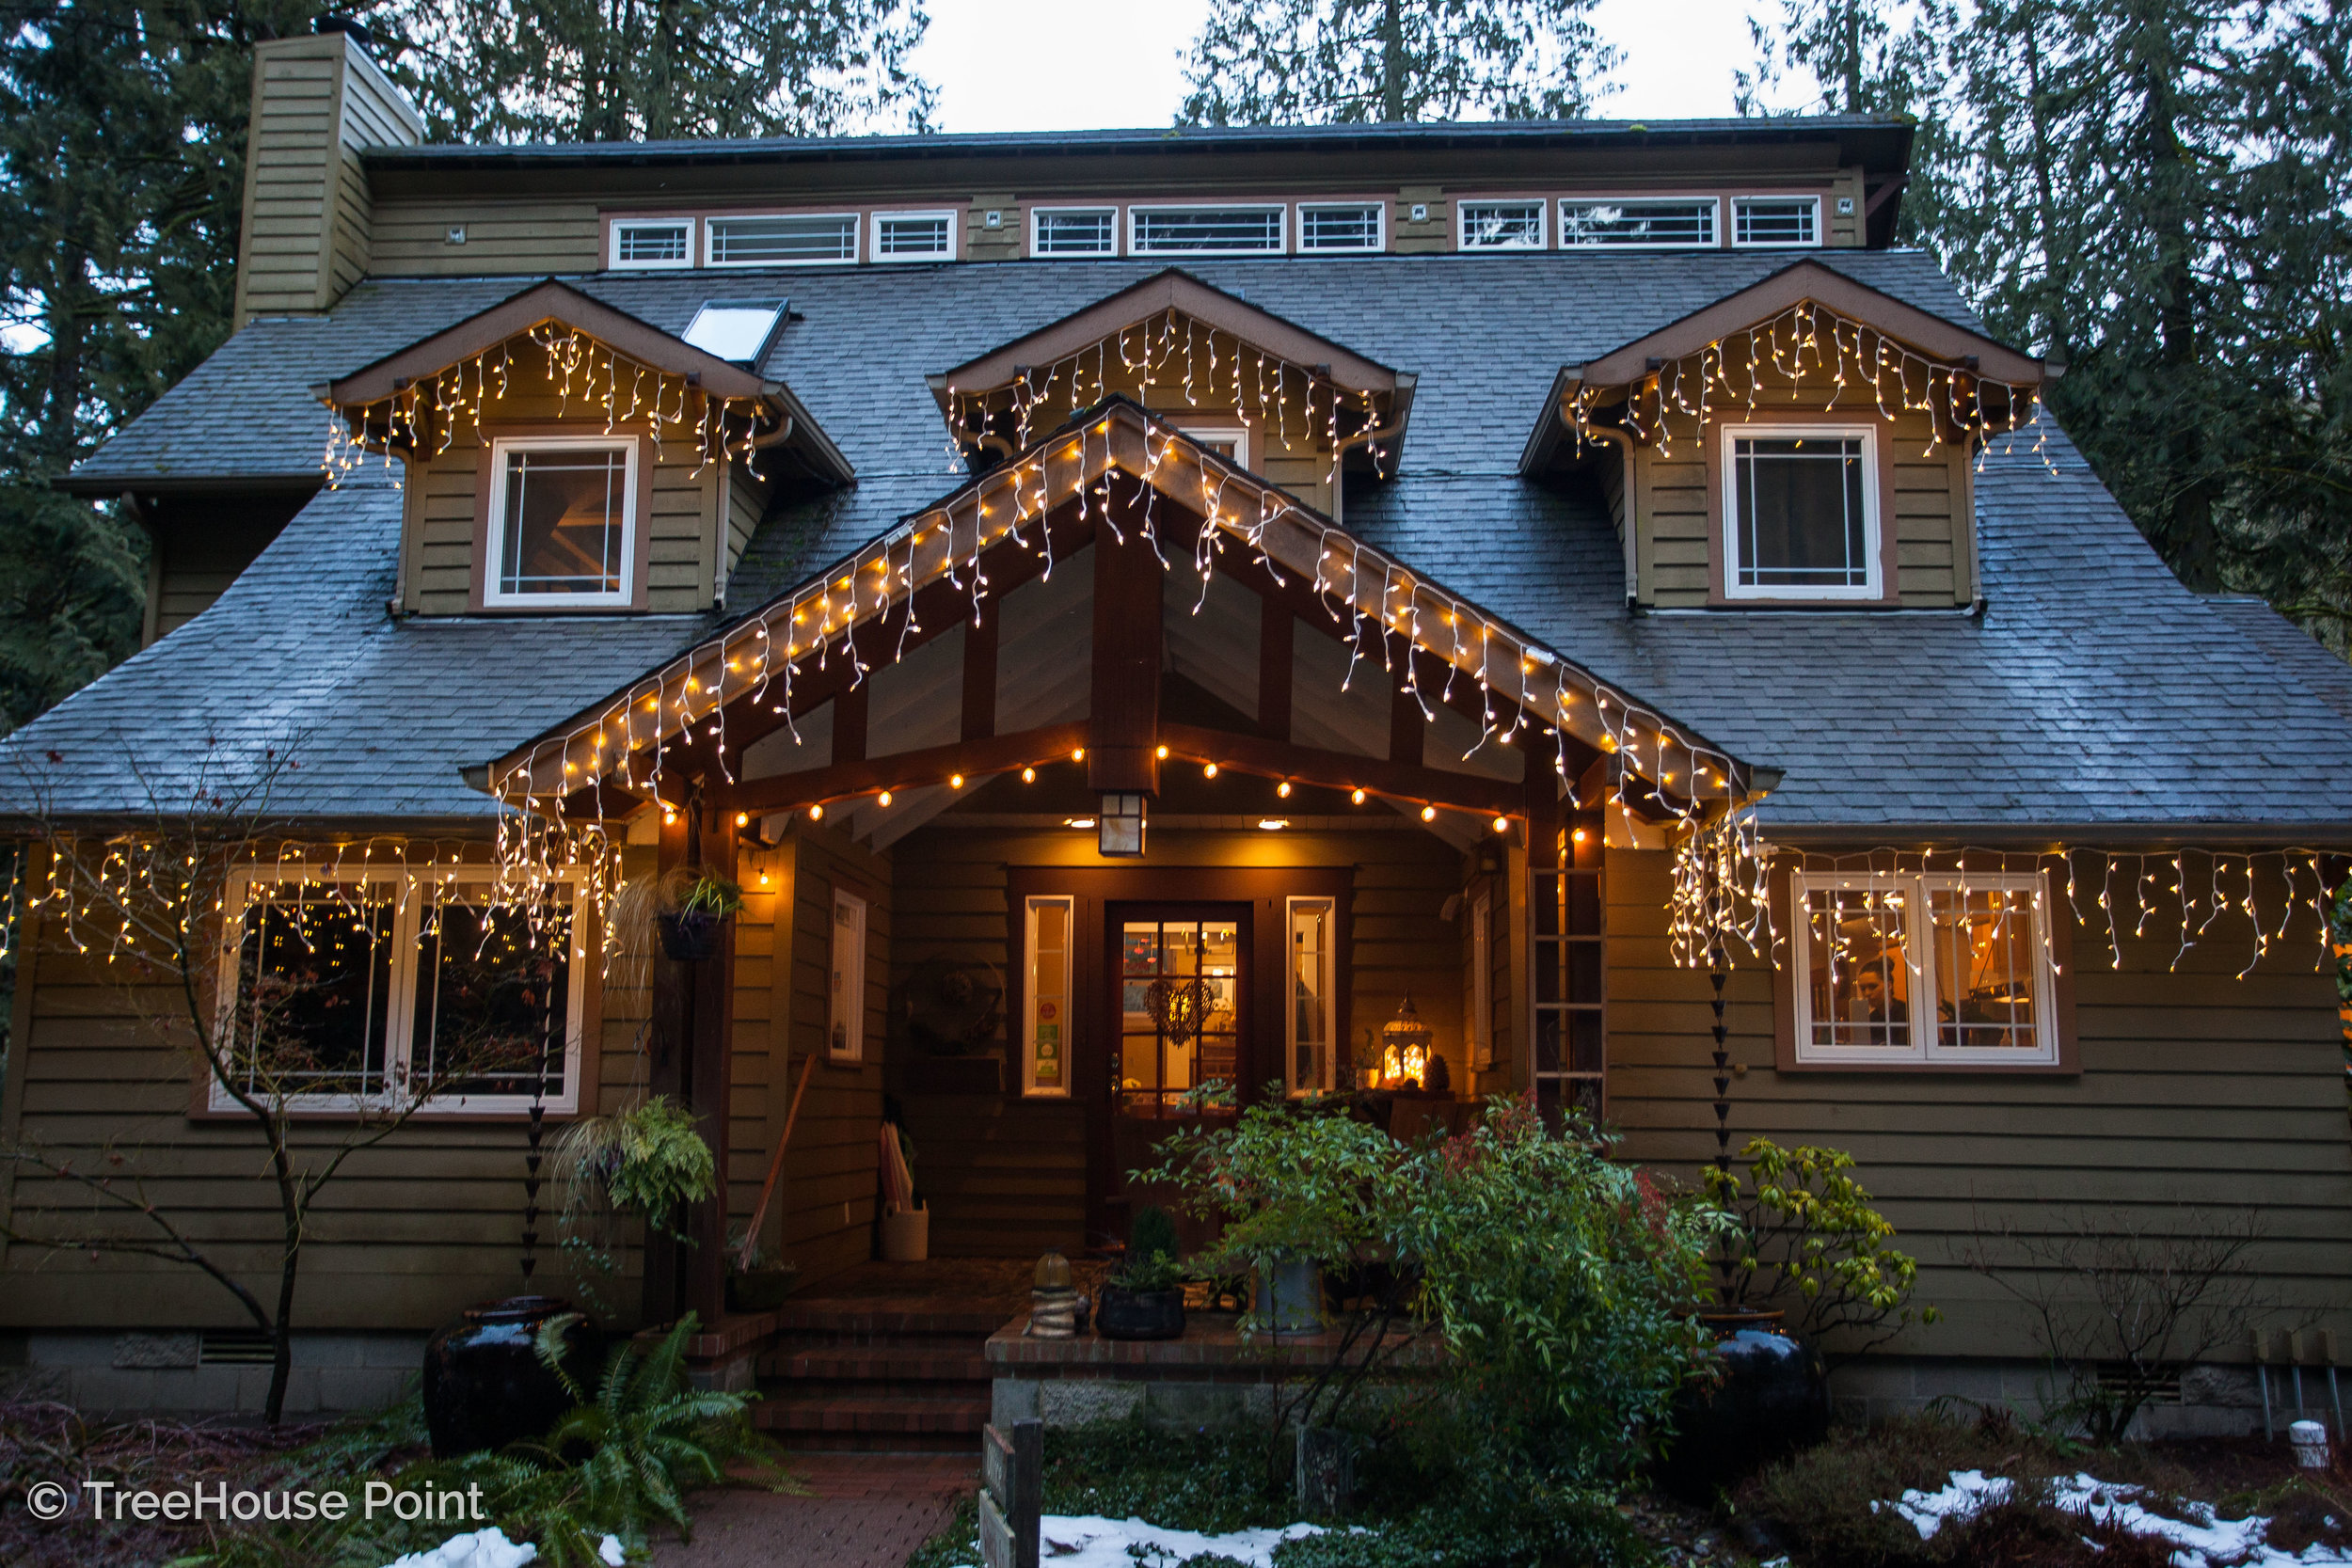 Fairy lights sparkle on the Lodge at TreeHouse Point.